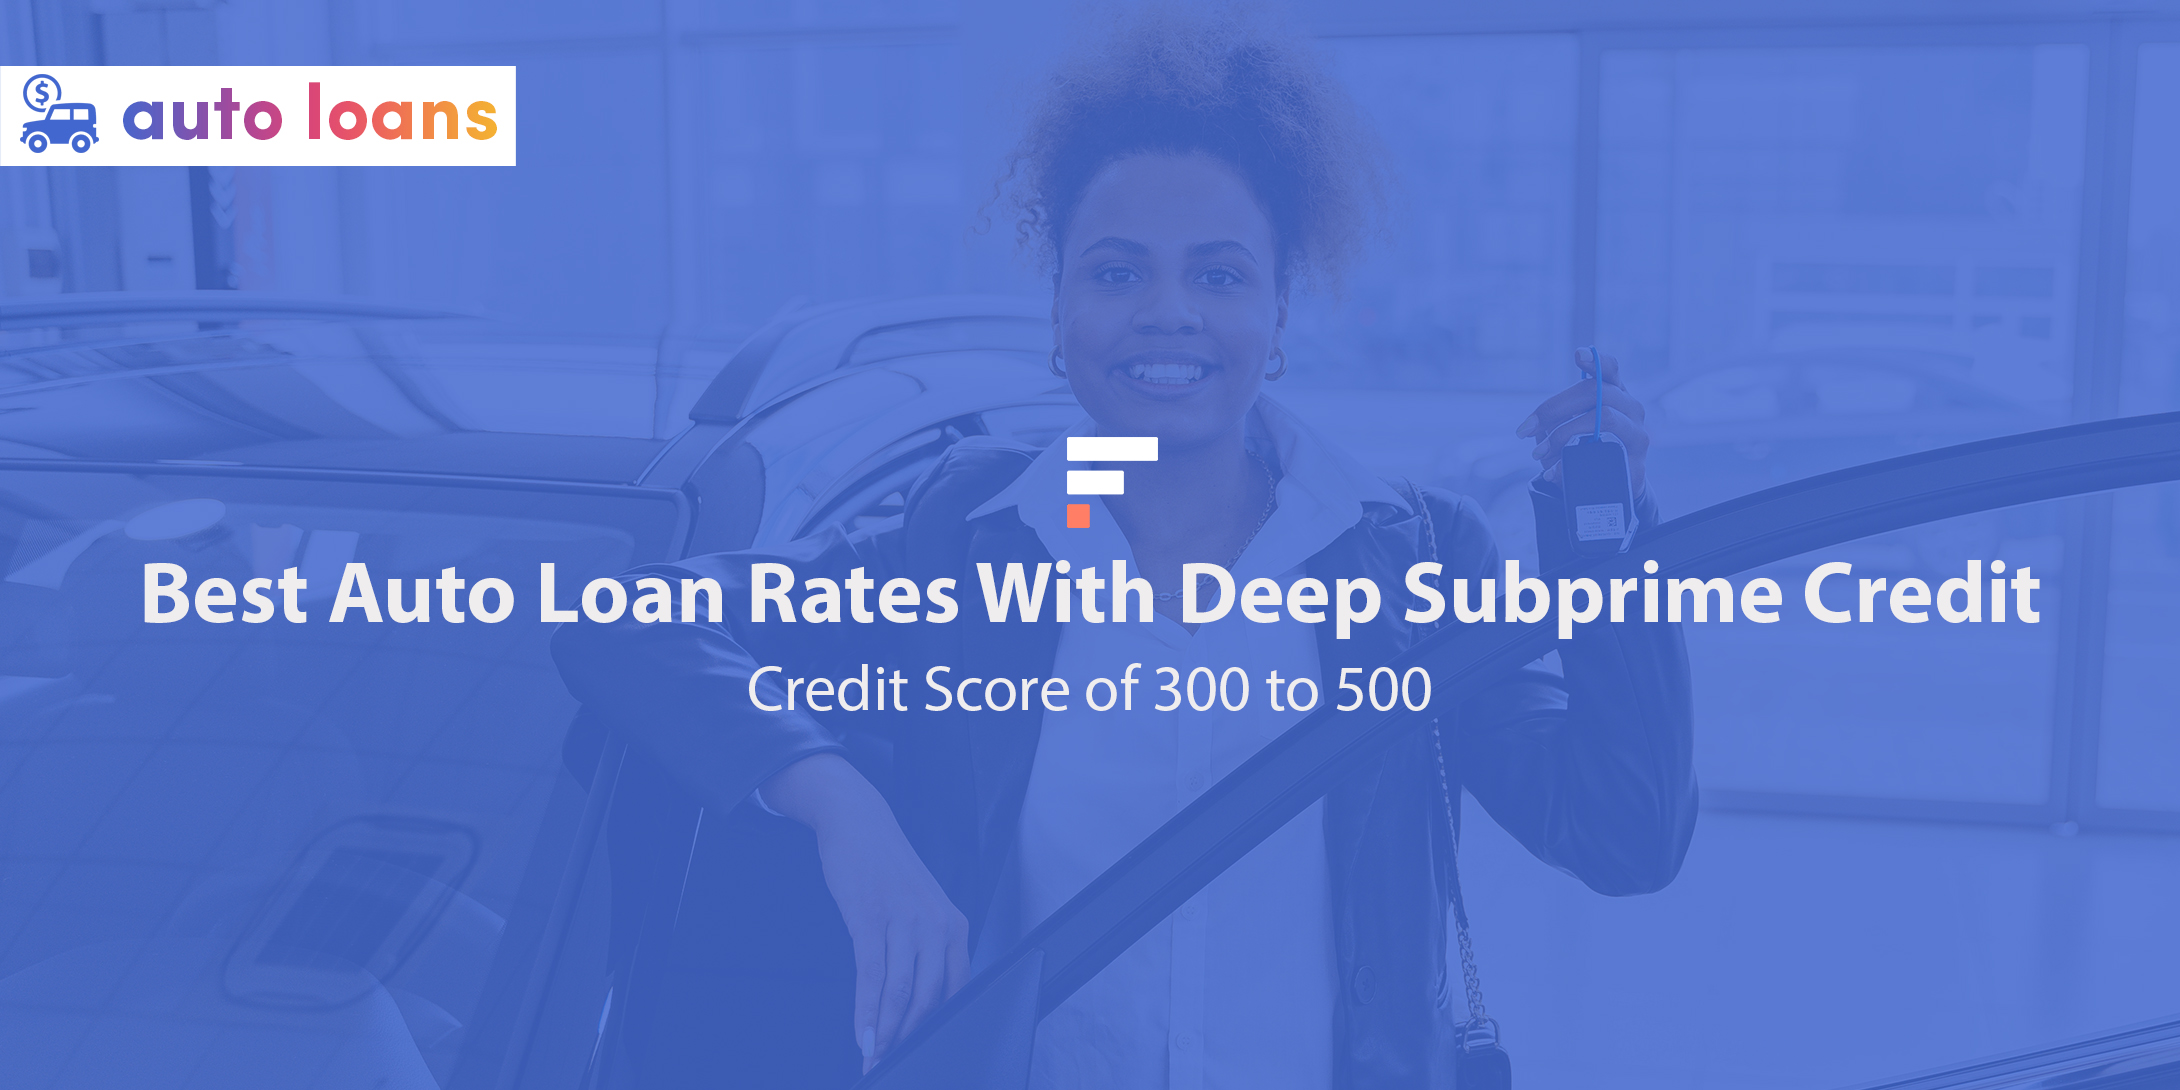 Best auto loan rates with deep subprime credit score of 300 to 500